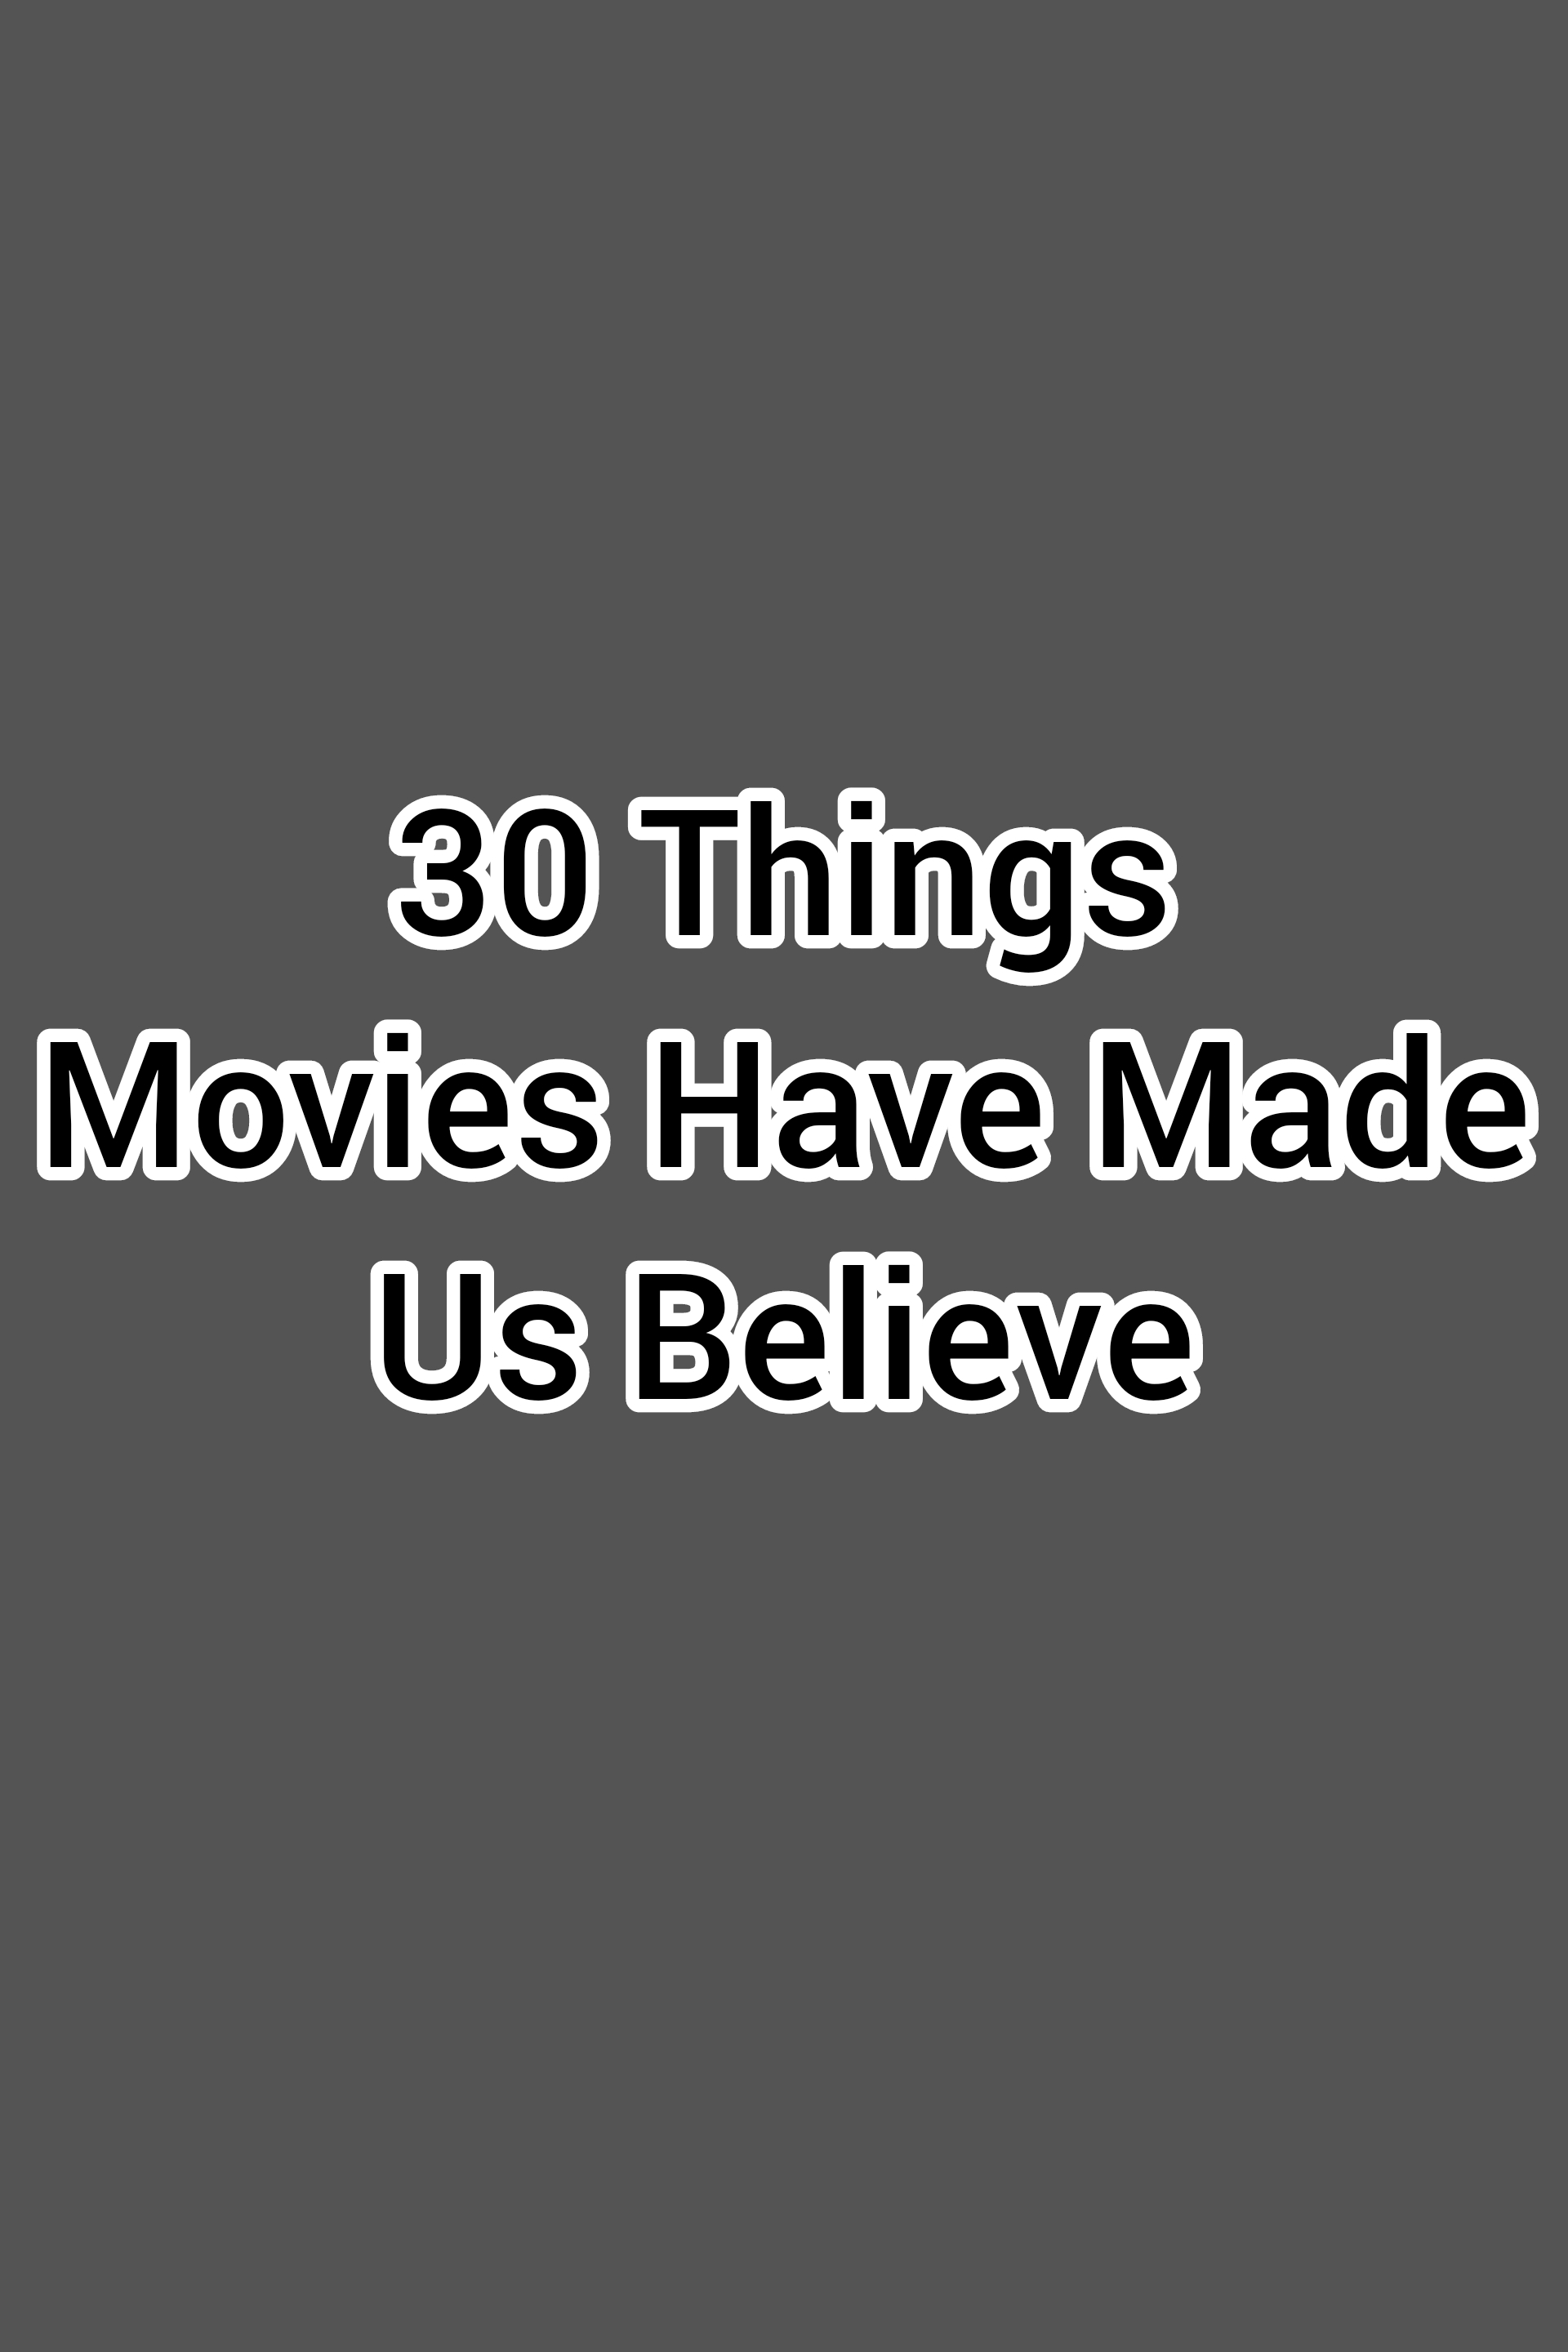 30 Things Movies Have Made Us Believe